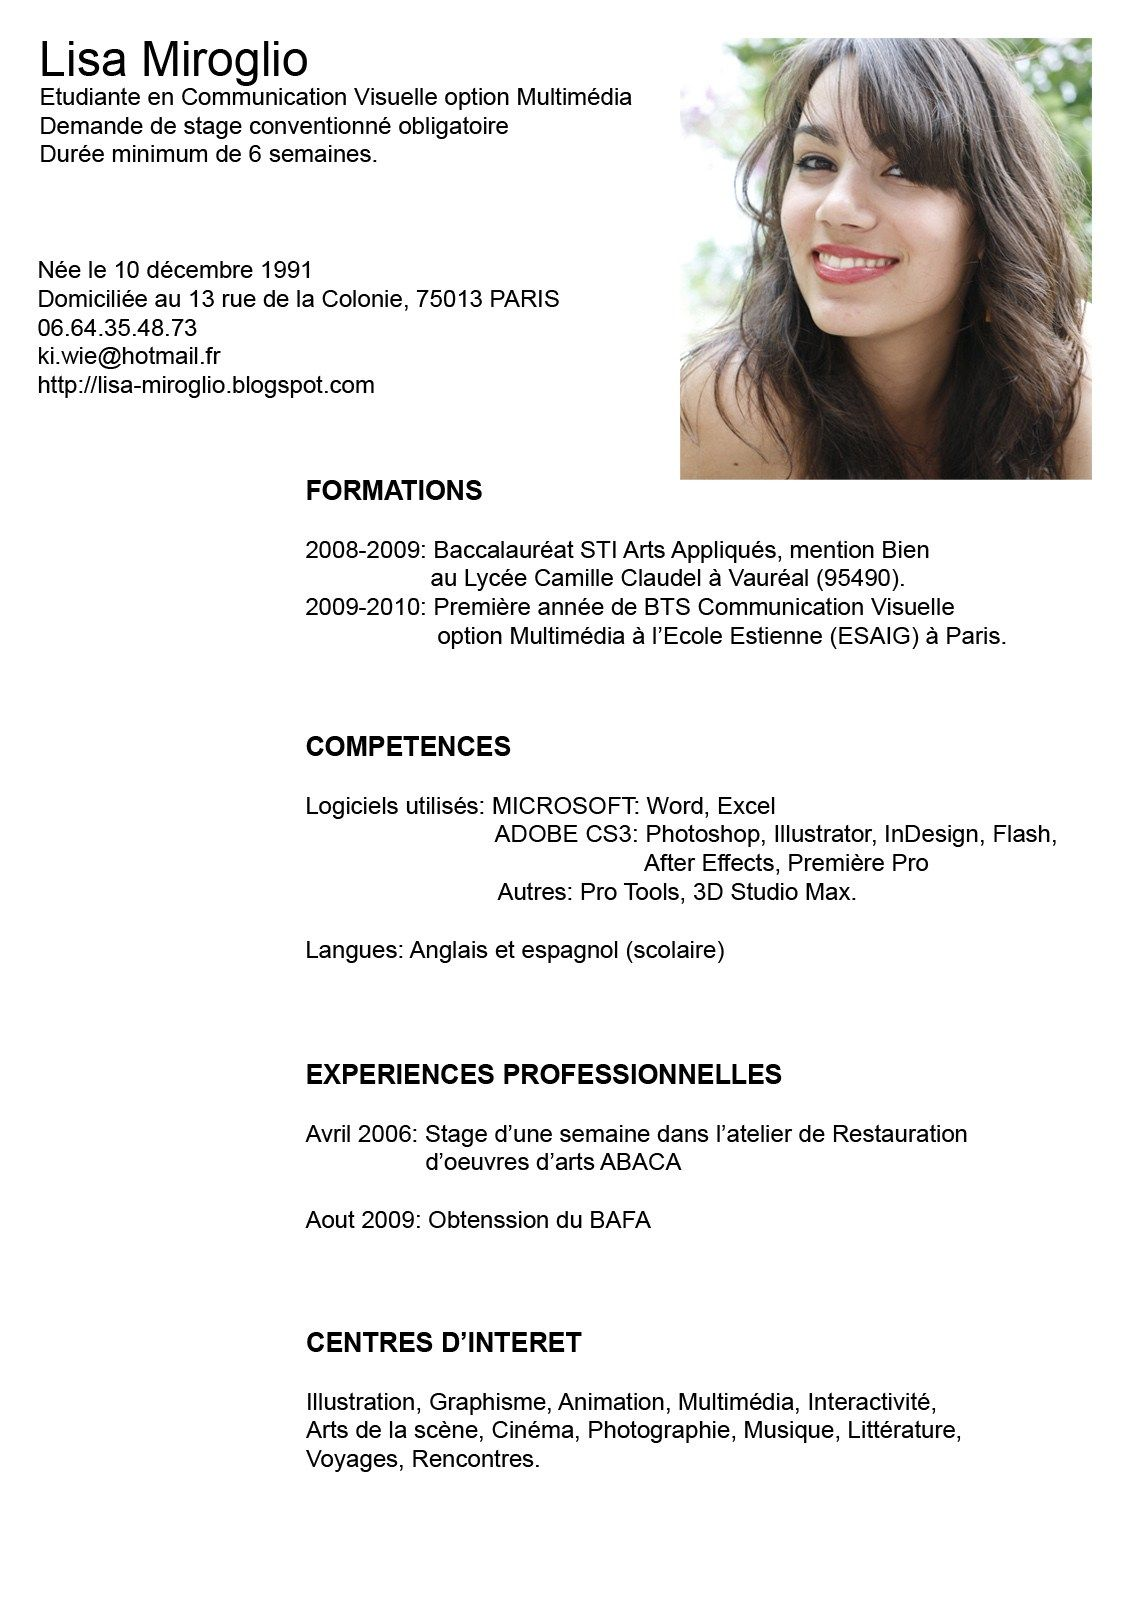 Curriculum Vitae Modelo Word En Ingles   All Document Resume Trucos Londres